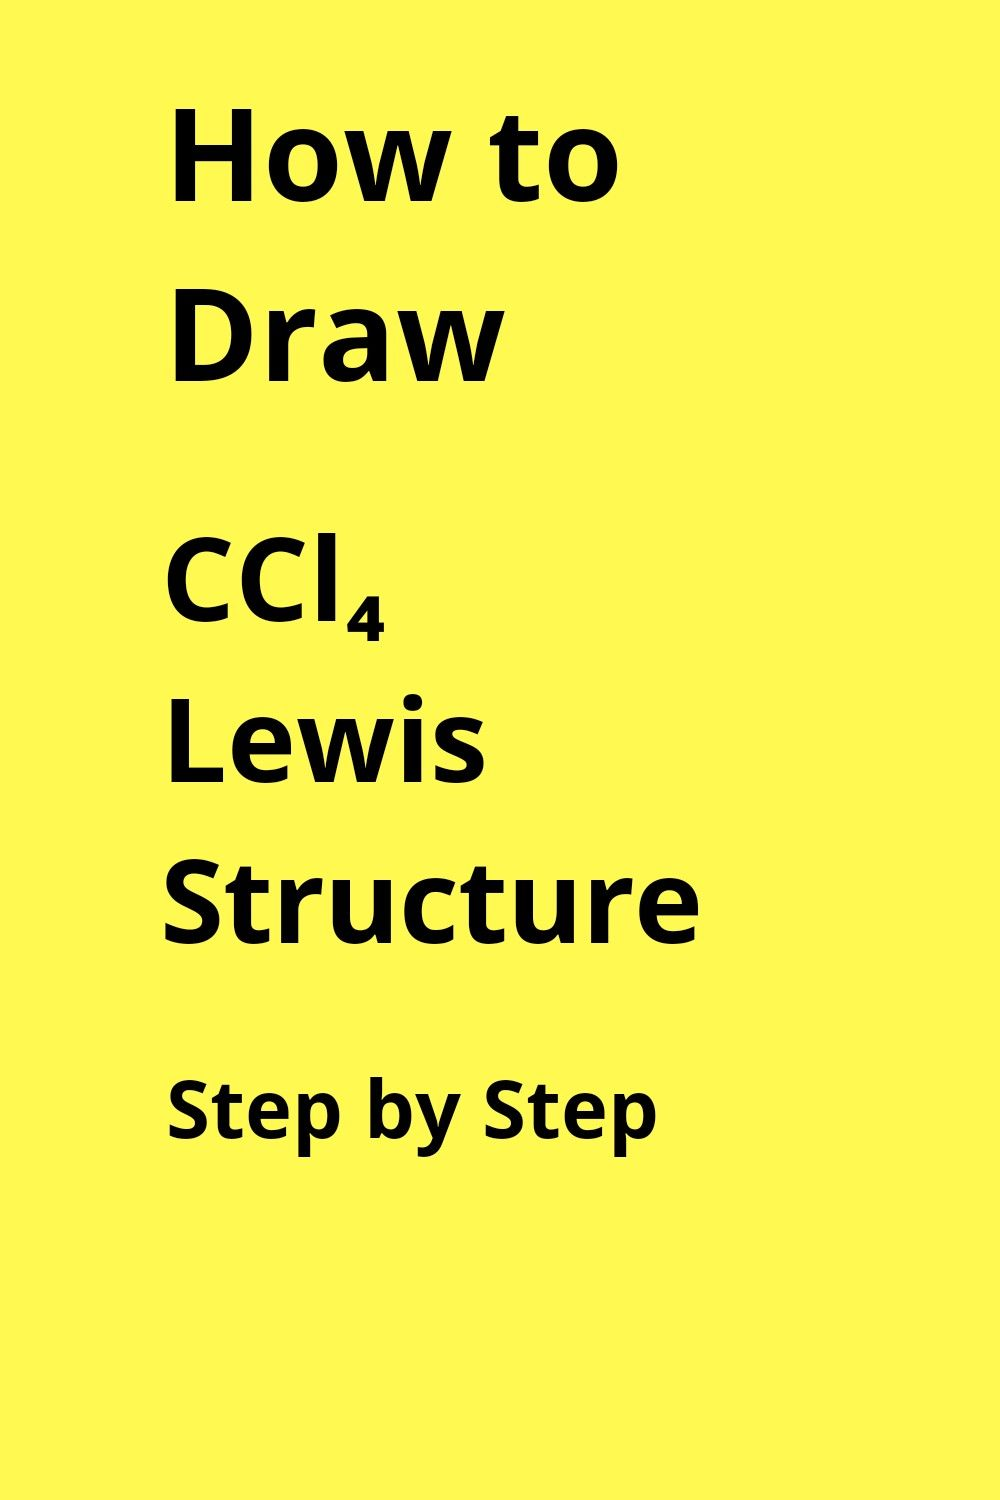 Ccl4 Lewis Dot Structure In 2020 Lewis Chemistry Worksheets Electron Configuration